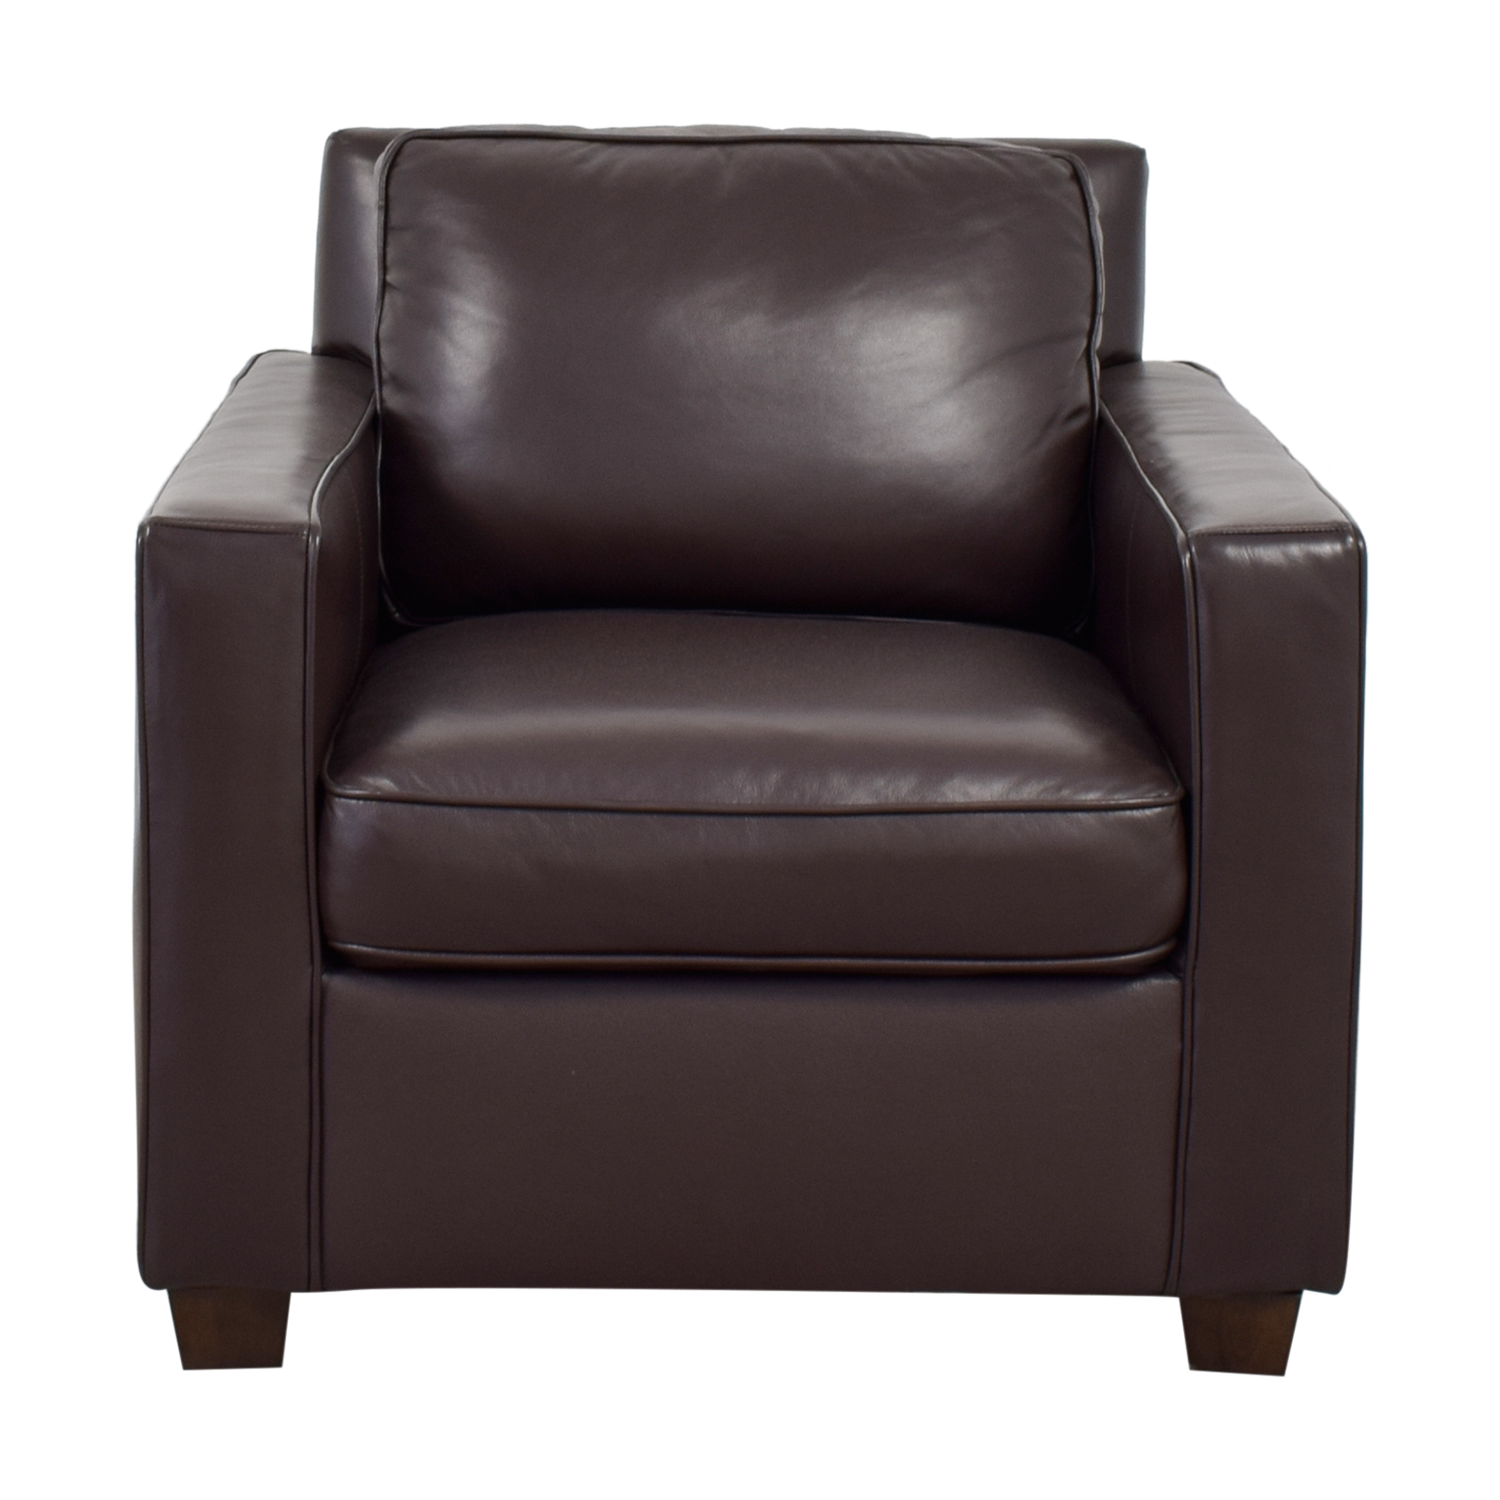 73% OFF   West Elm West Elm Henry Brown Leather Arm Chair / Chairs